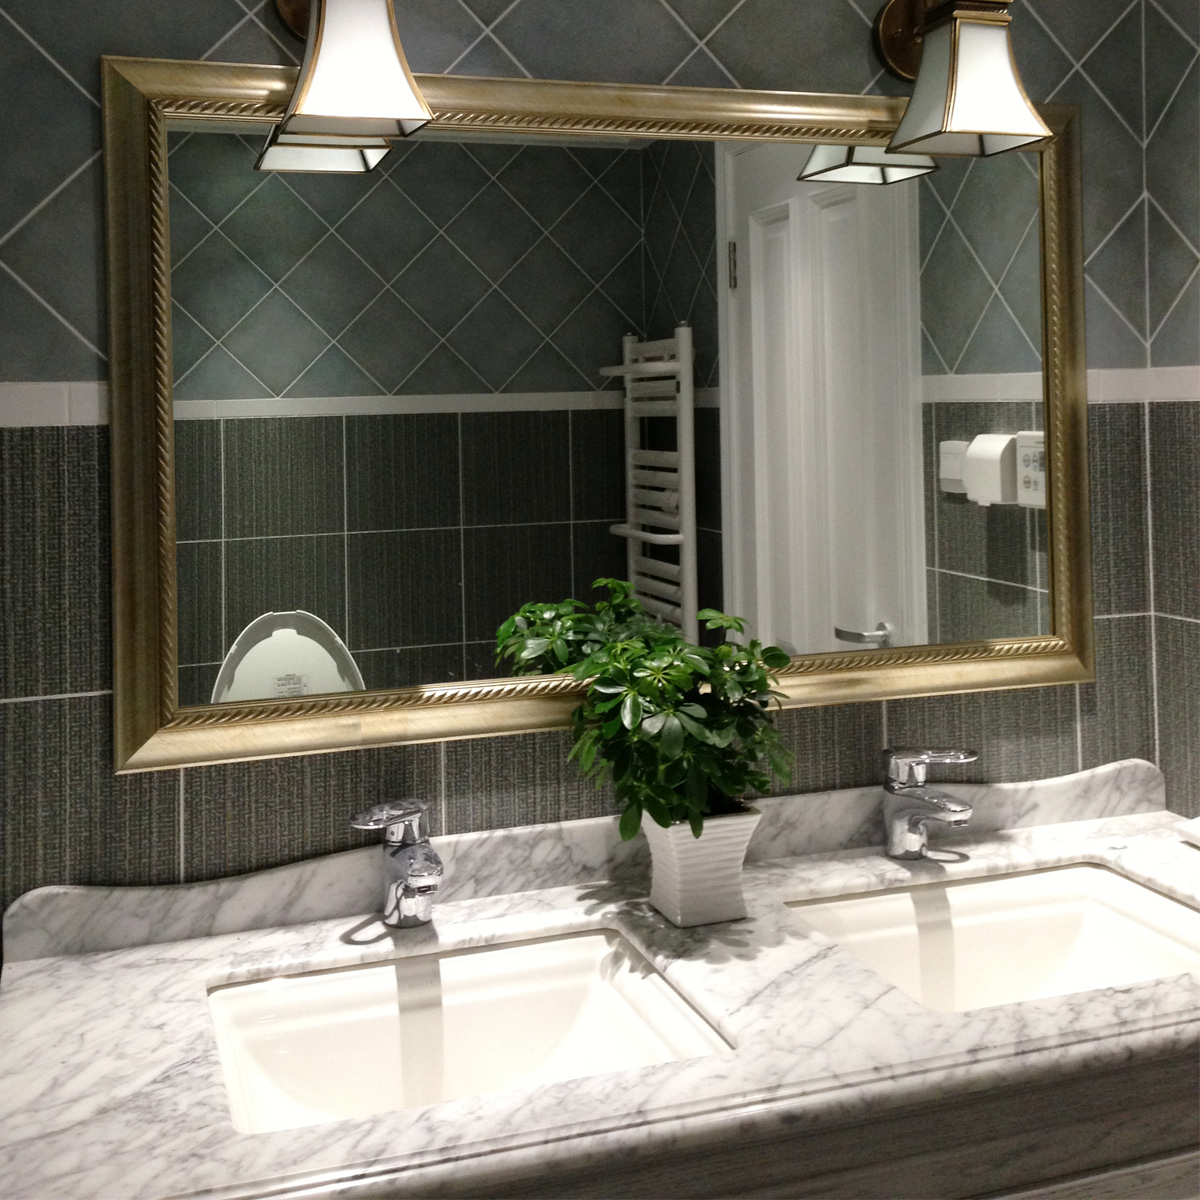 25 great ideas and pictures cool bathroom tile designs ideas